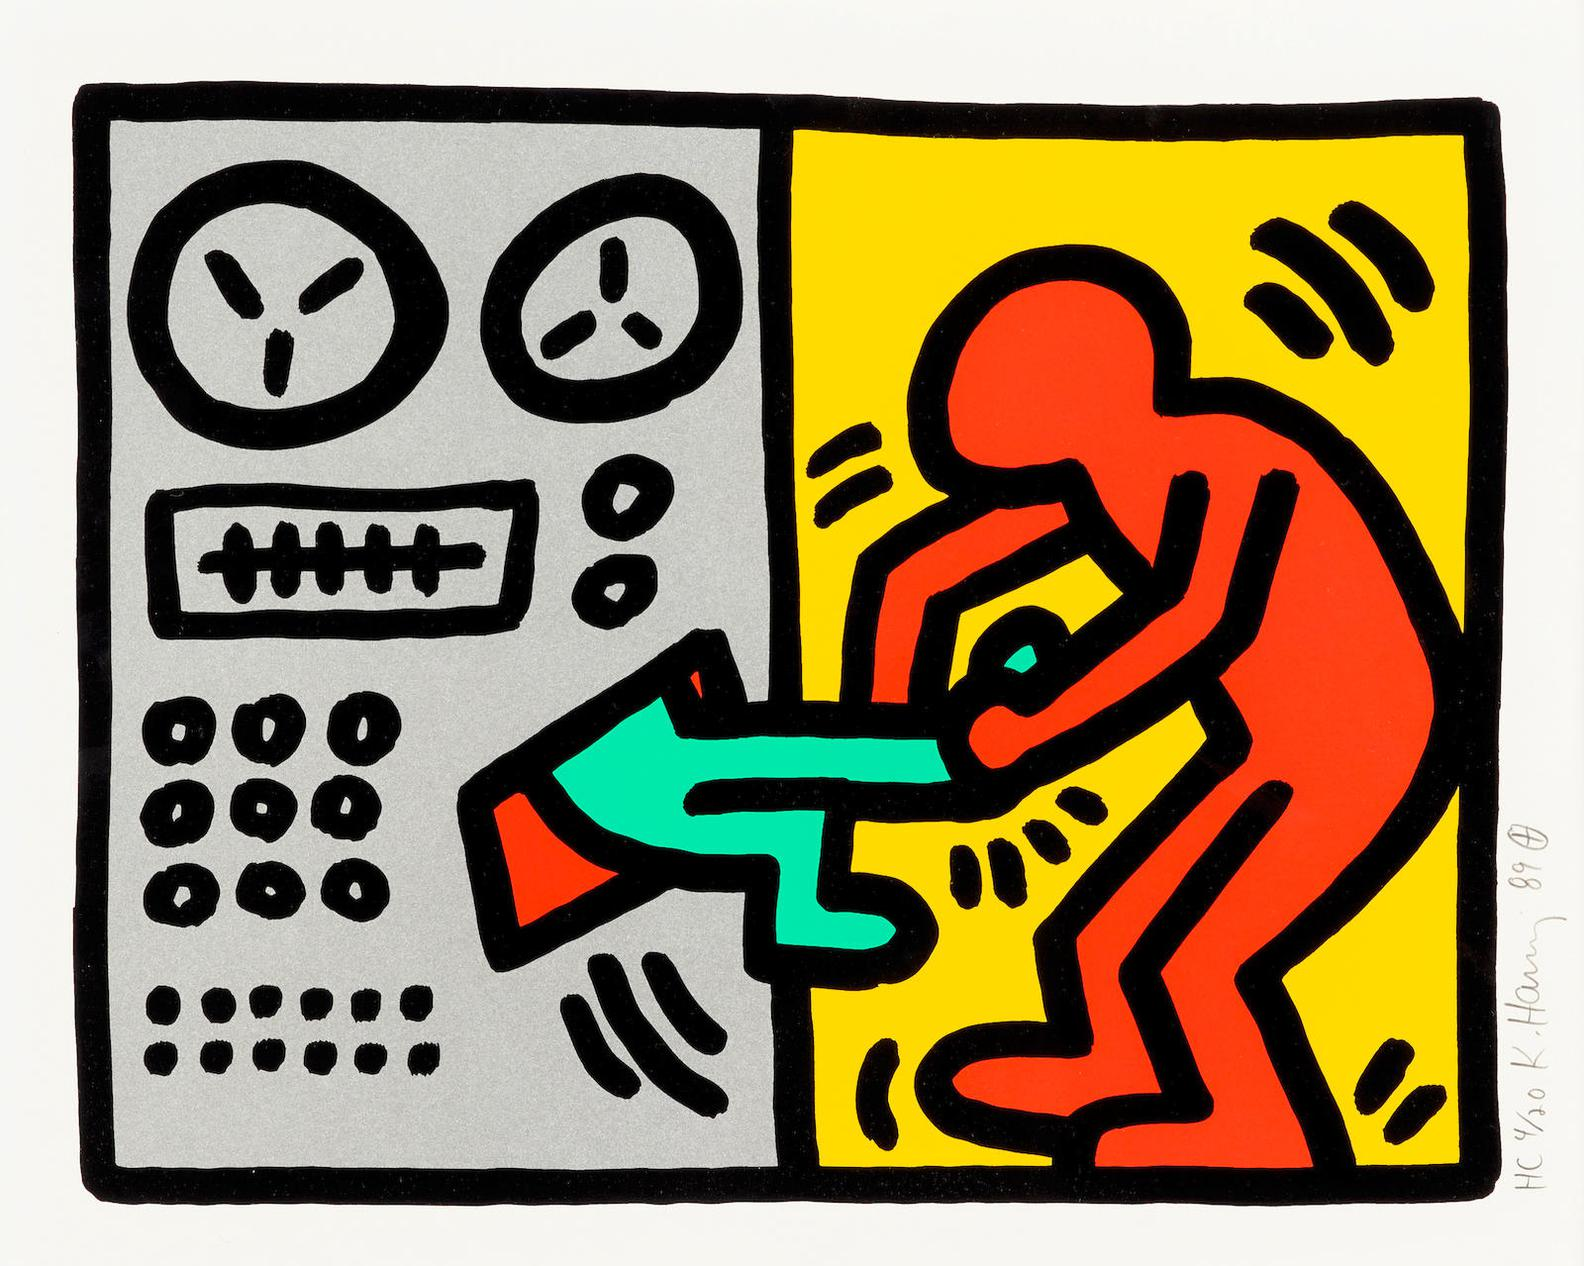 Keith Haring-Pop Shop Iii: One Plate (L. P. 145)-1989